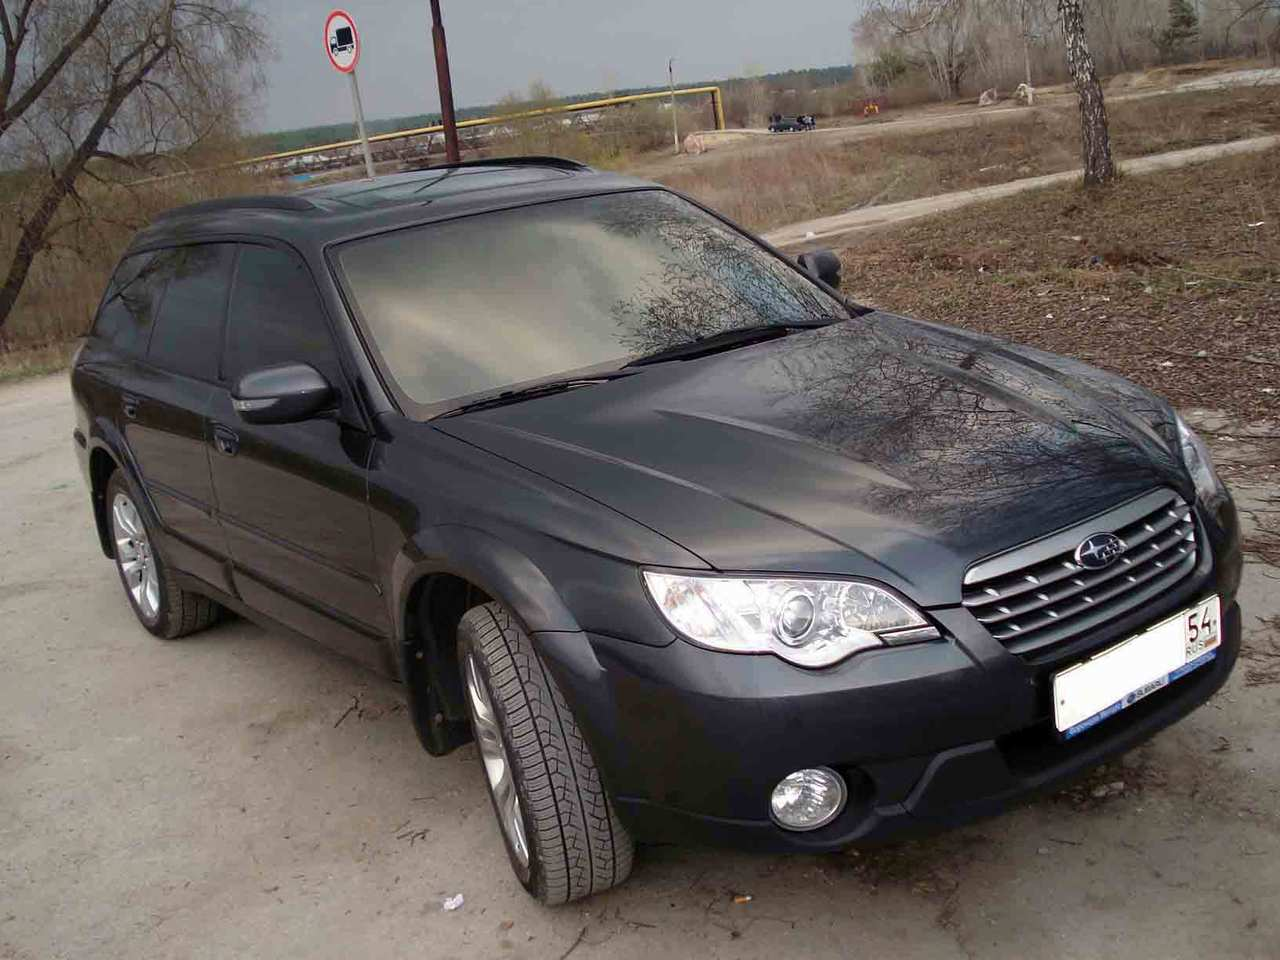 used 2008 subaru outback photos 3000cc gasoline. Black Bedroom Furniture Sets. Home Design Ideas